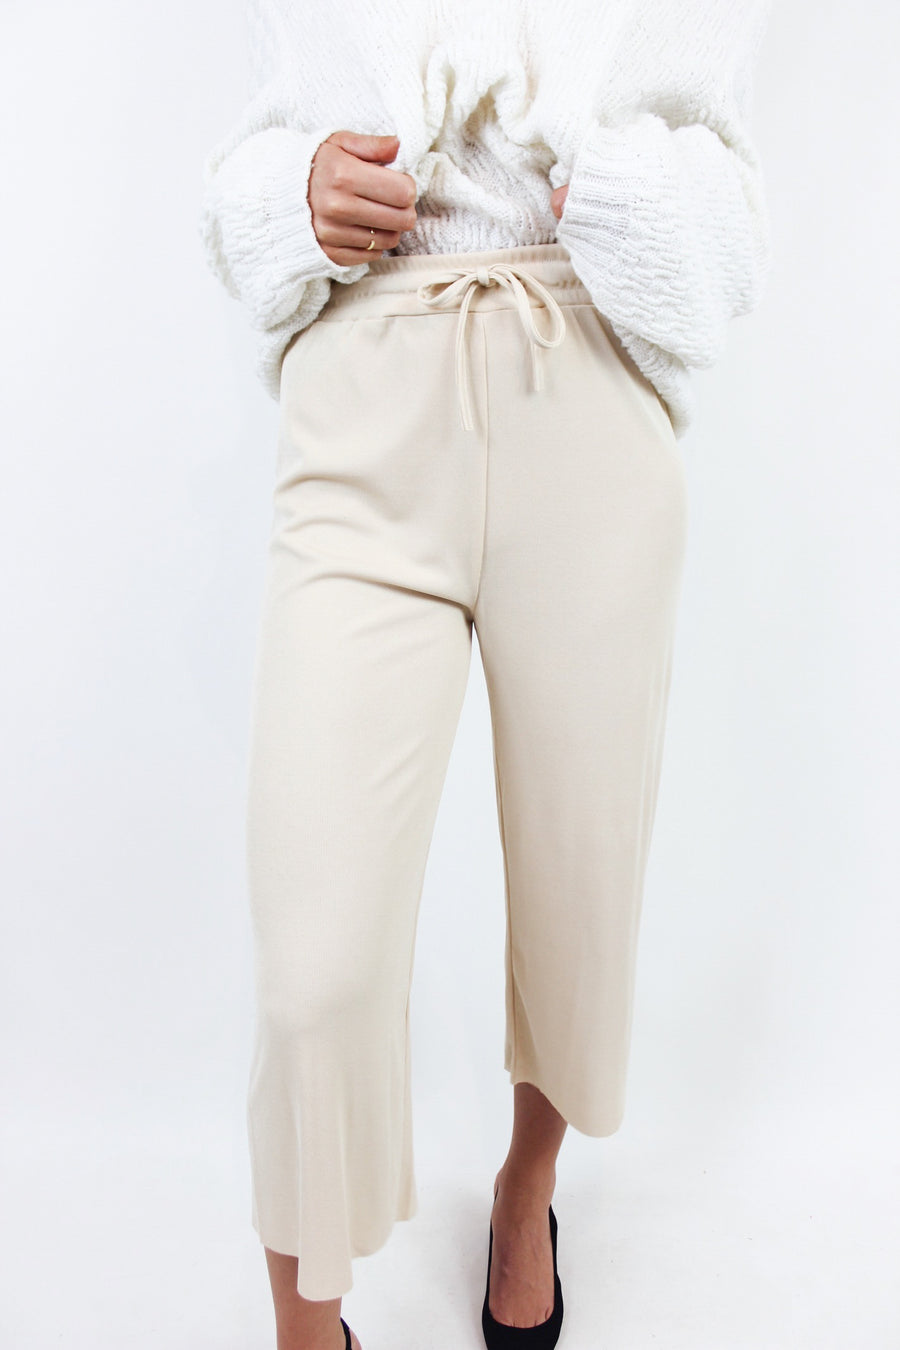 DRIFT AWAY RIBBED PANTS